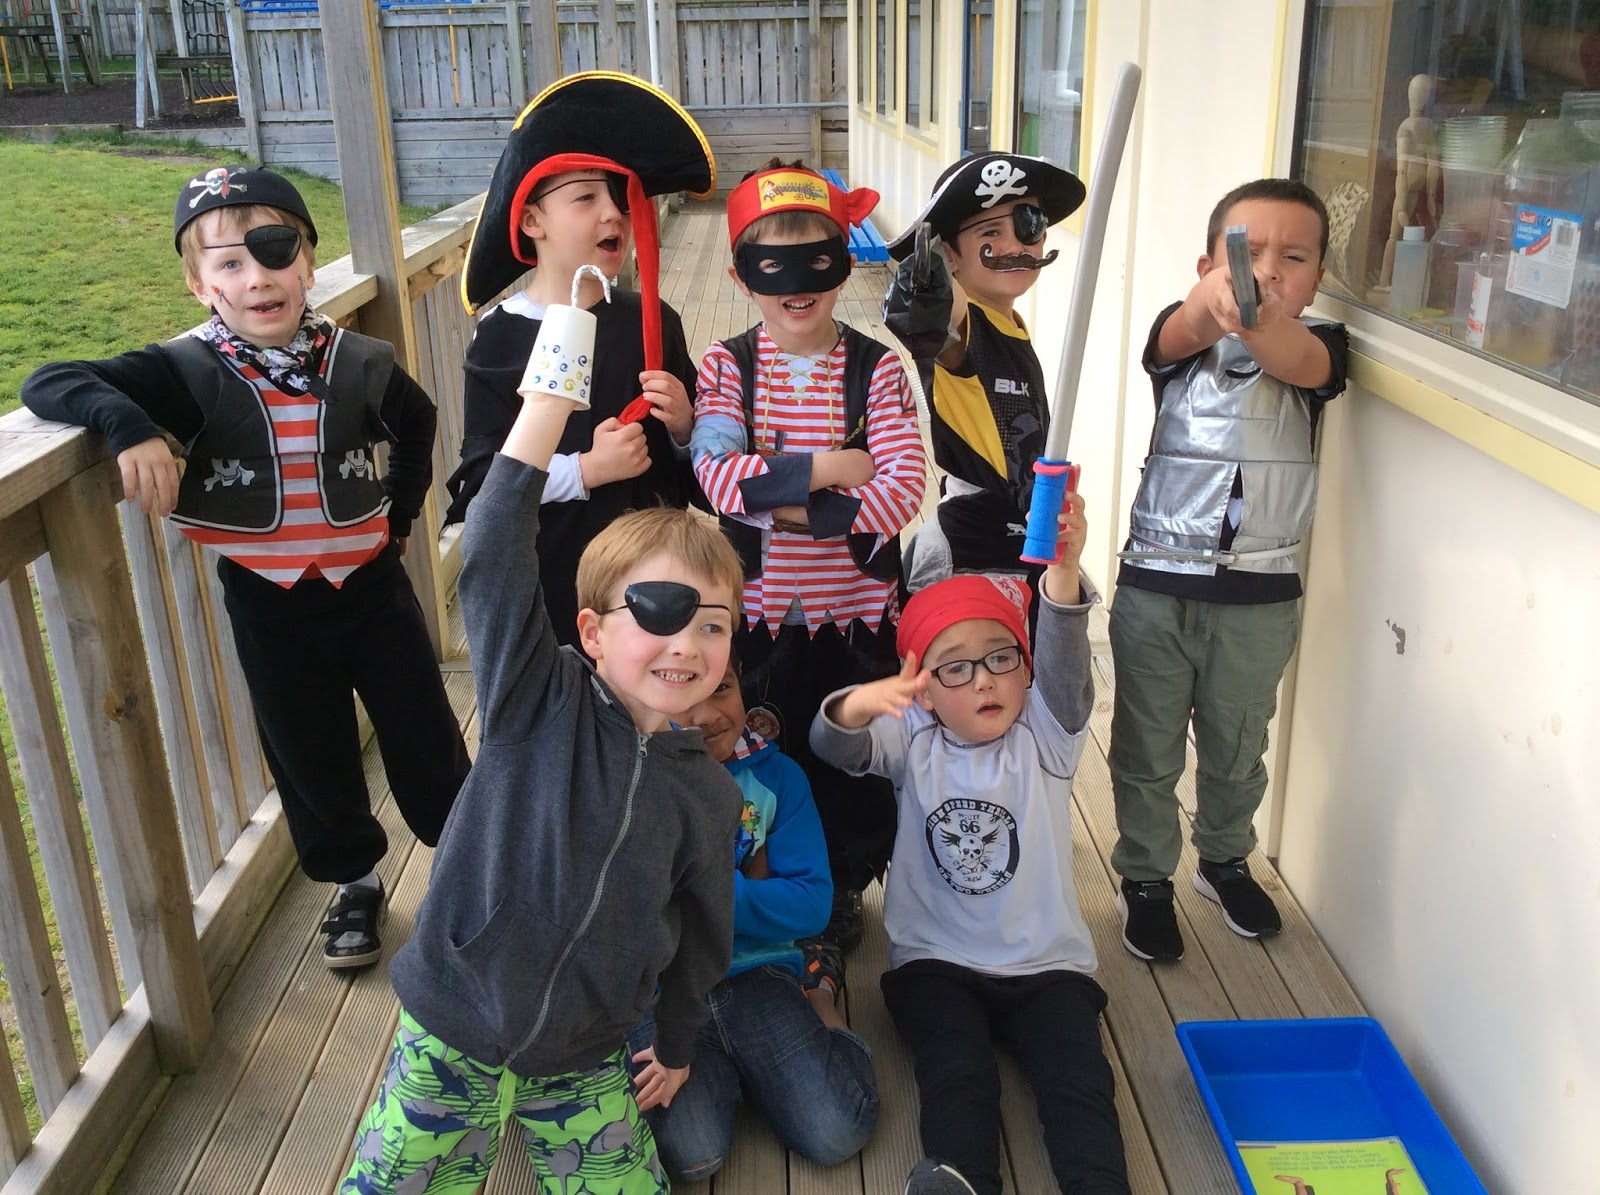 What a fantastic day of costumes and fun!! It was Room 20u0027s pirate dress up day today. Check out the Room 20 pirates  sc 1 st  Room 20 & Room 20: Pirate dress up day